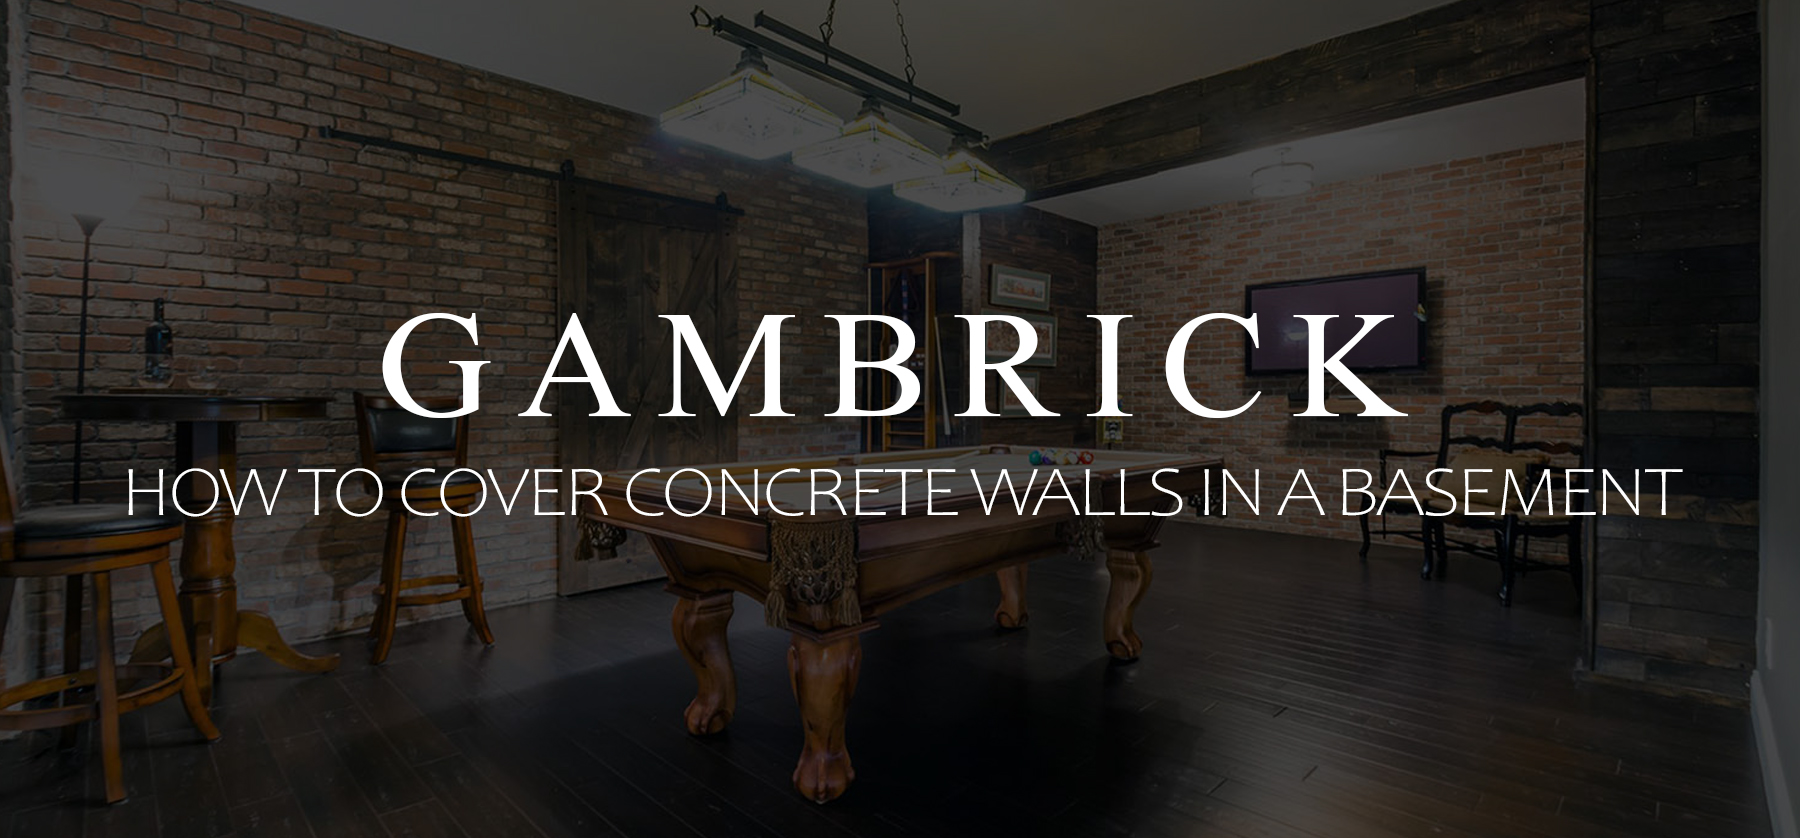 how to cover concrete walls in a basement banner pic